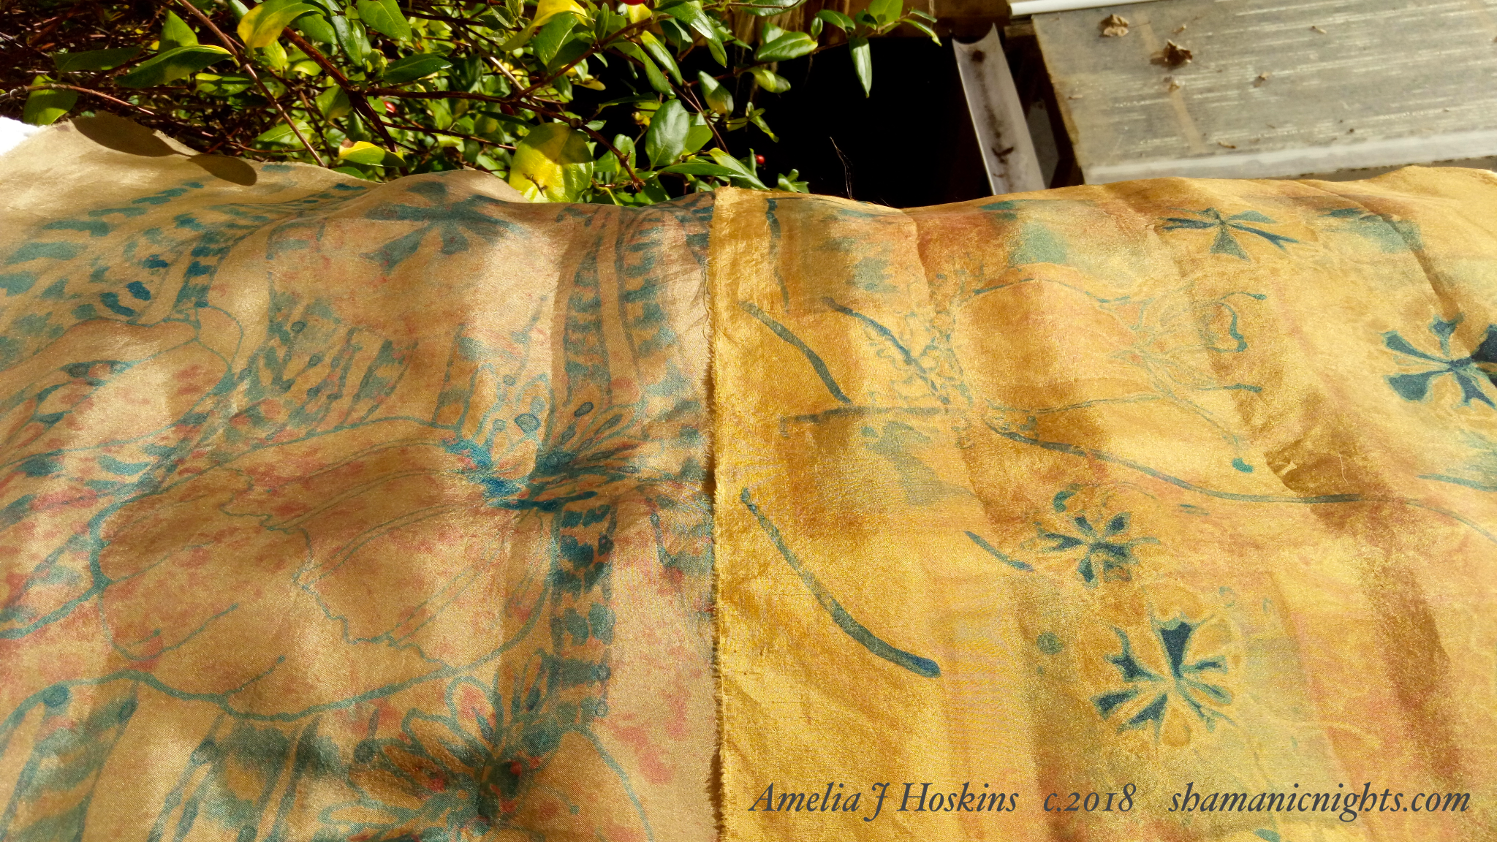 Eucalyptus dyed silk, two tones sheen, with painting stage one 2018-10-20 13.22.31 - 002 - edited annotated